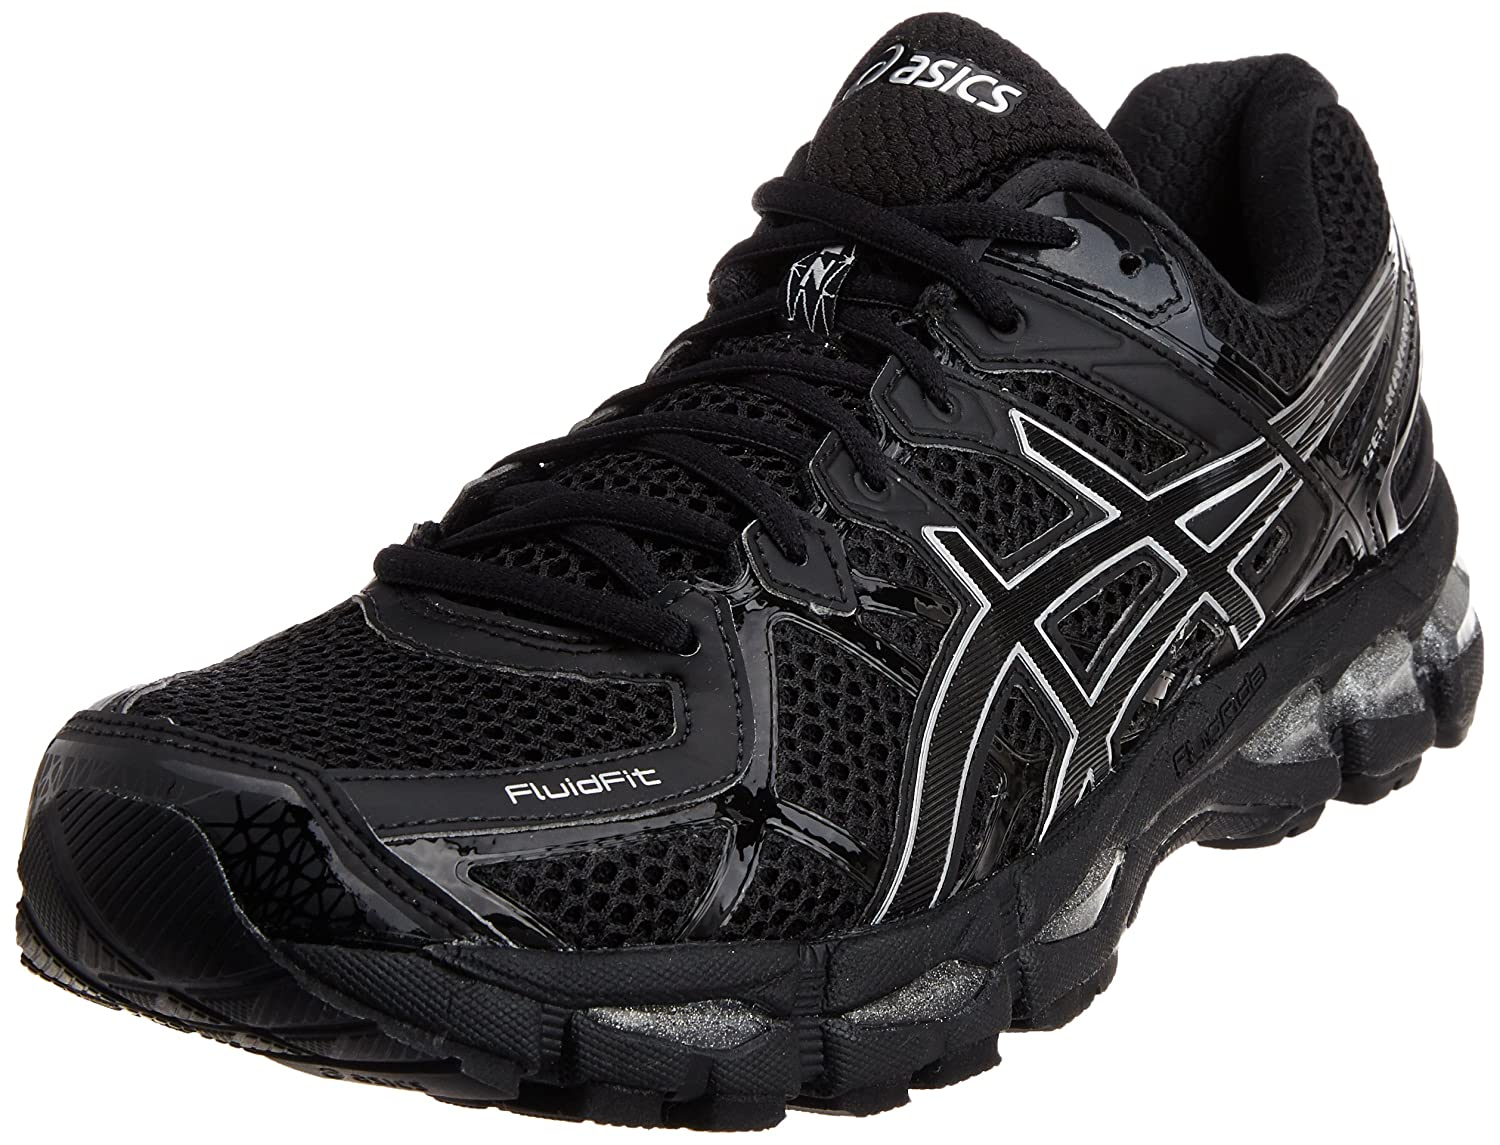 new style factory outlets popular brand ASICS Men's Gel-Kayano 21 Mesh Running Shoes